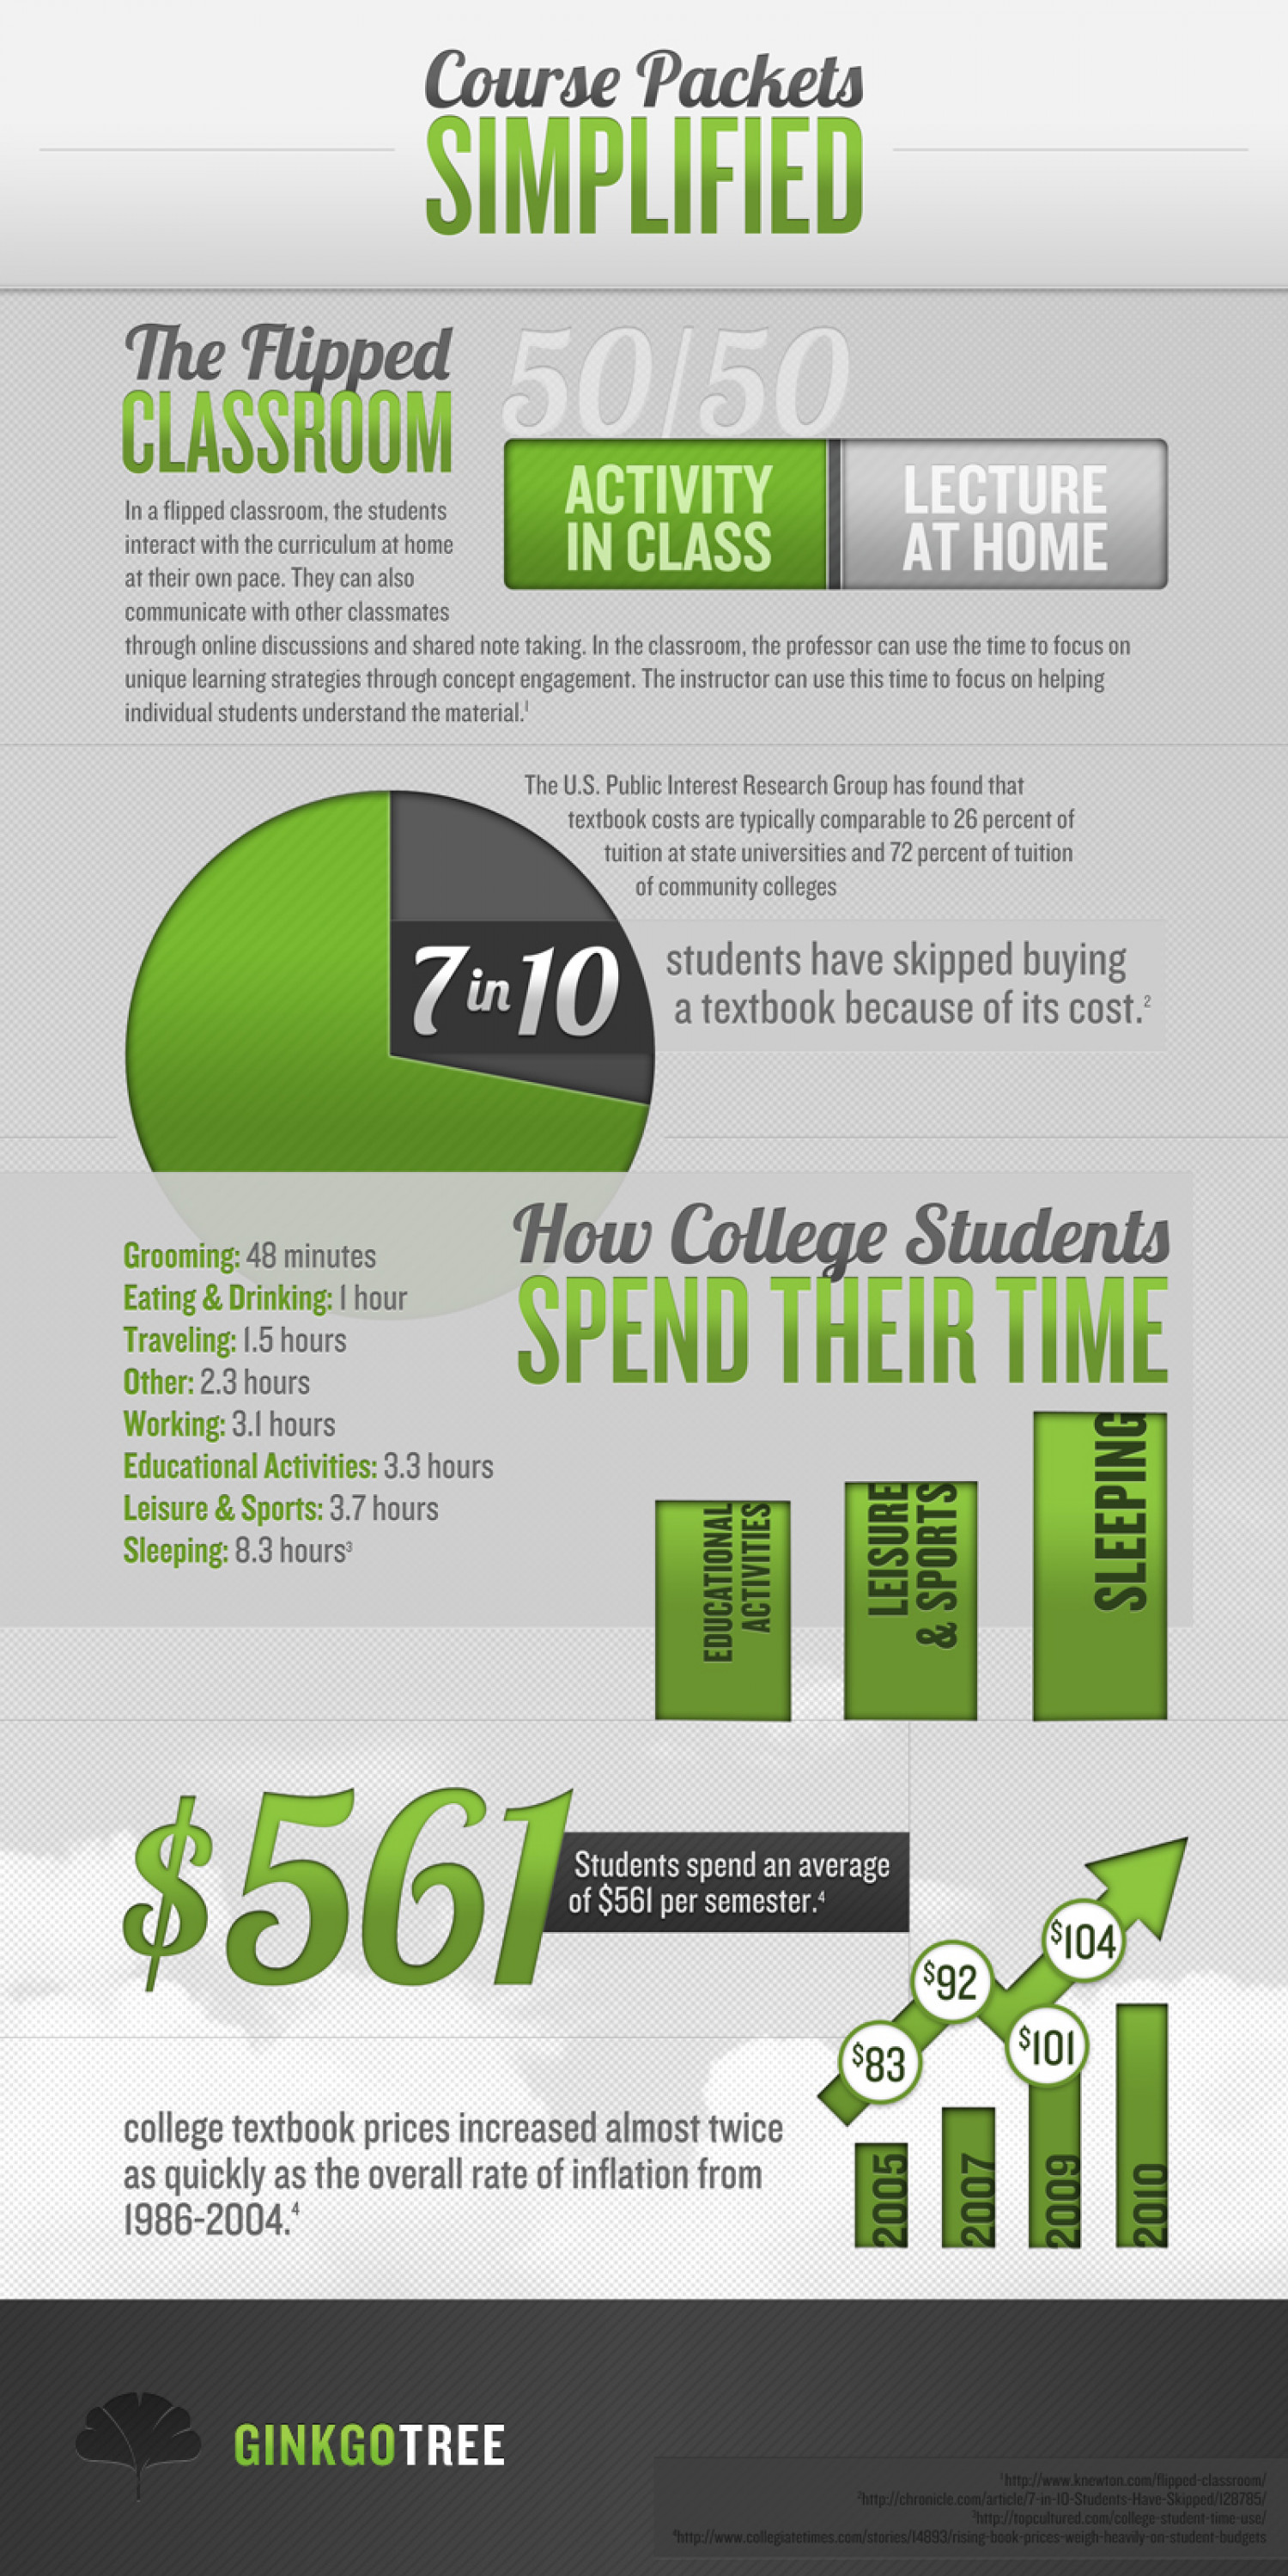 Course Packets Simplified Infographic